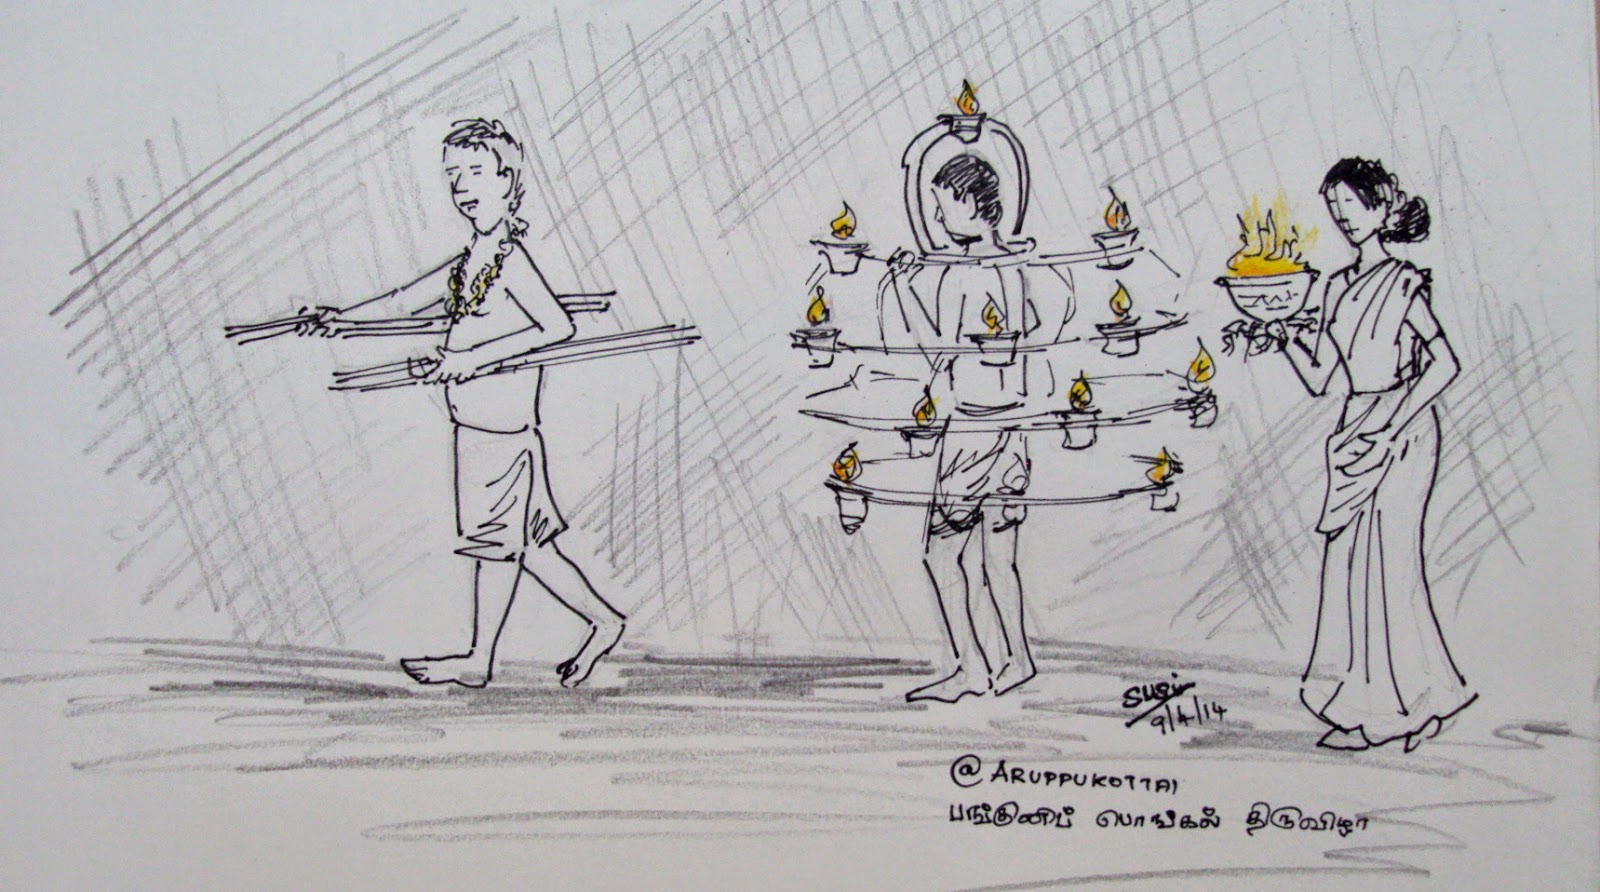 Aruppukottai panguni pongal festival quick pen and pencil sketches from the bazaar main road april 9 2014